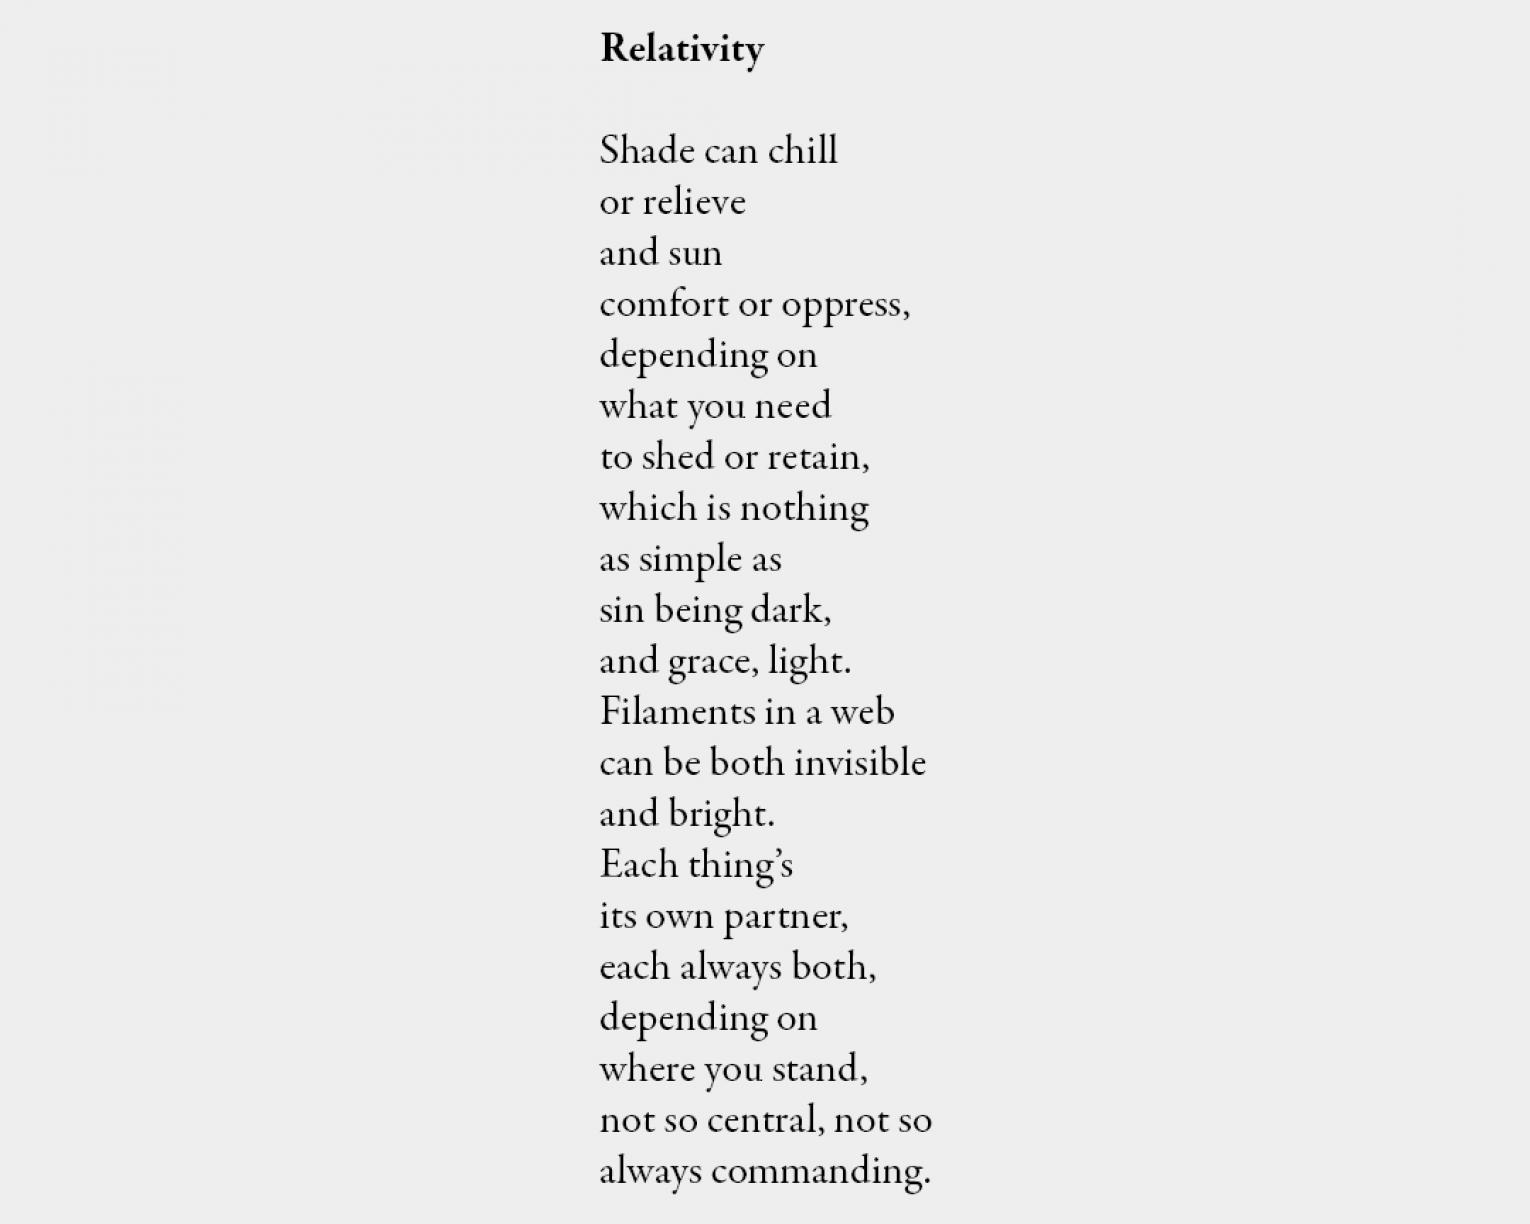 Poem: Relativity Shade can chill or relieve and sun comfort or oppress, depending on what you need to shed or retain, which is nothing as simple as sin being dark, and grace, light. Filaments in a web can be both invisible and bright. Each thing's its own partner, each always both, depending on where you stand, not so central, not so always commanding.